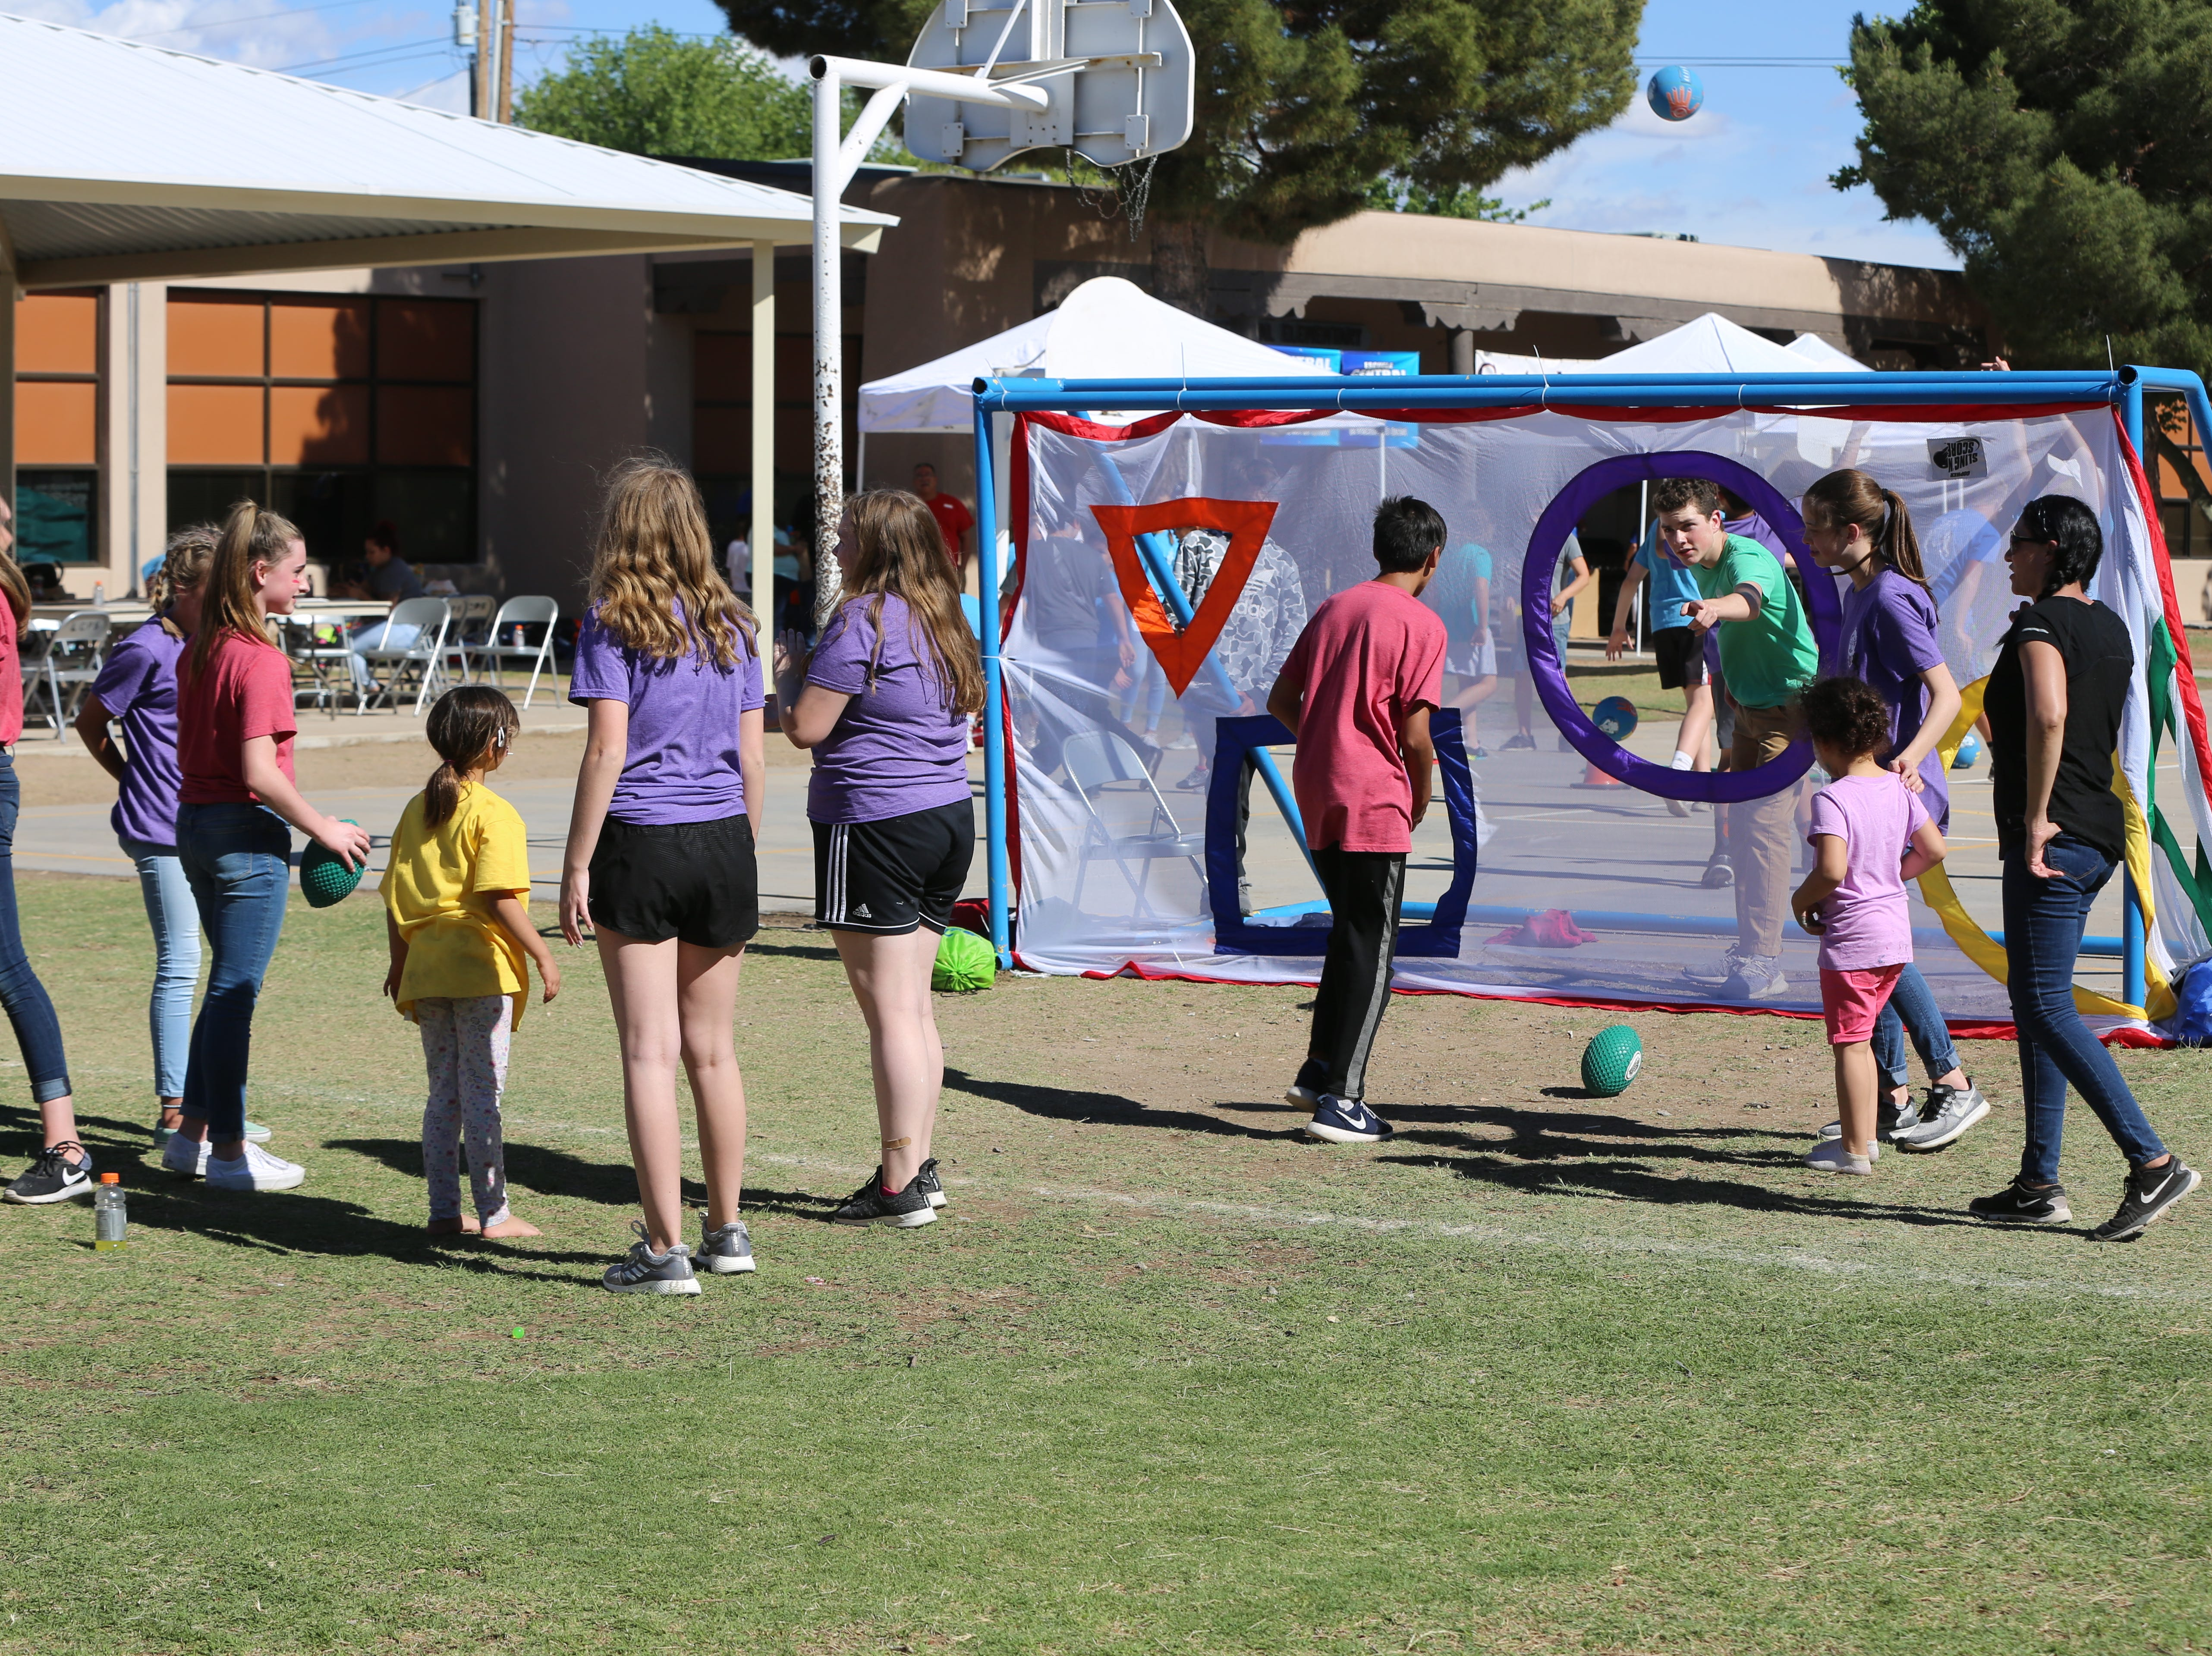 Students from Central Elementary School and Cherry Hills Middle School in Highlands Ranch, Colorado, play games during a community carnival to honor Central Elementary's 70th anniversary Wednesday, April 24.